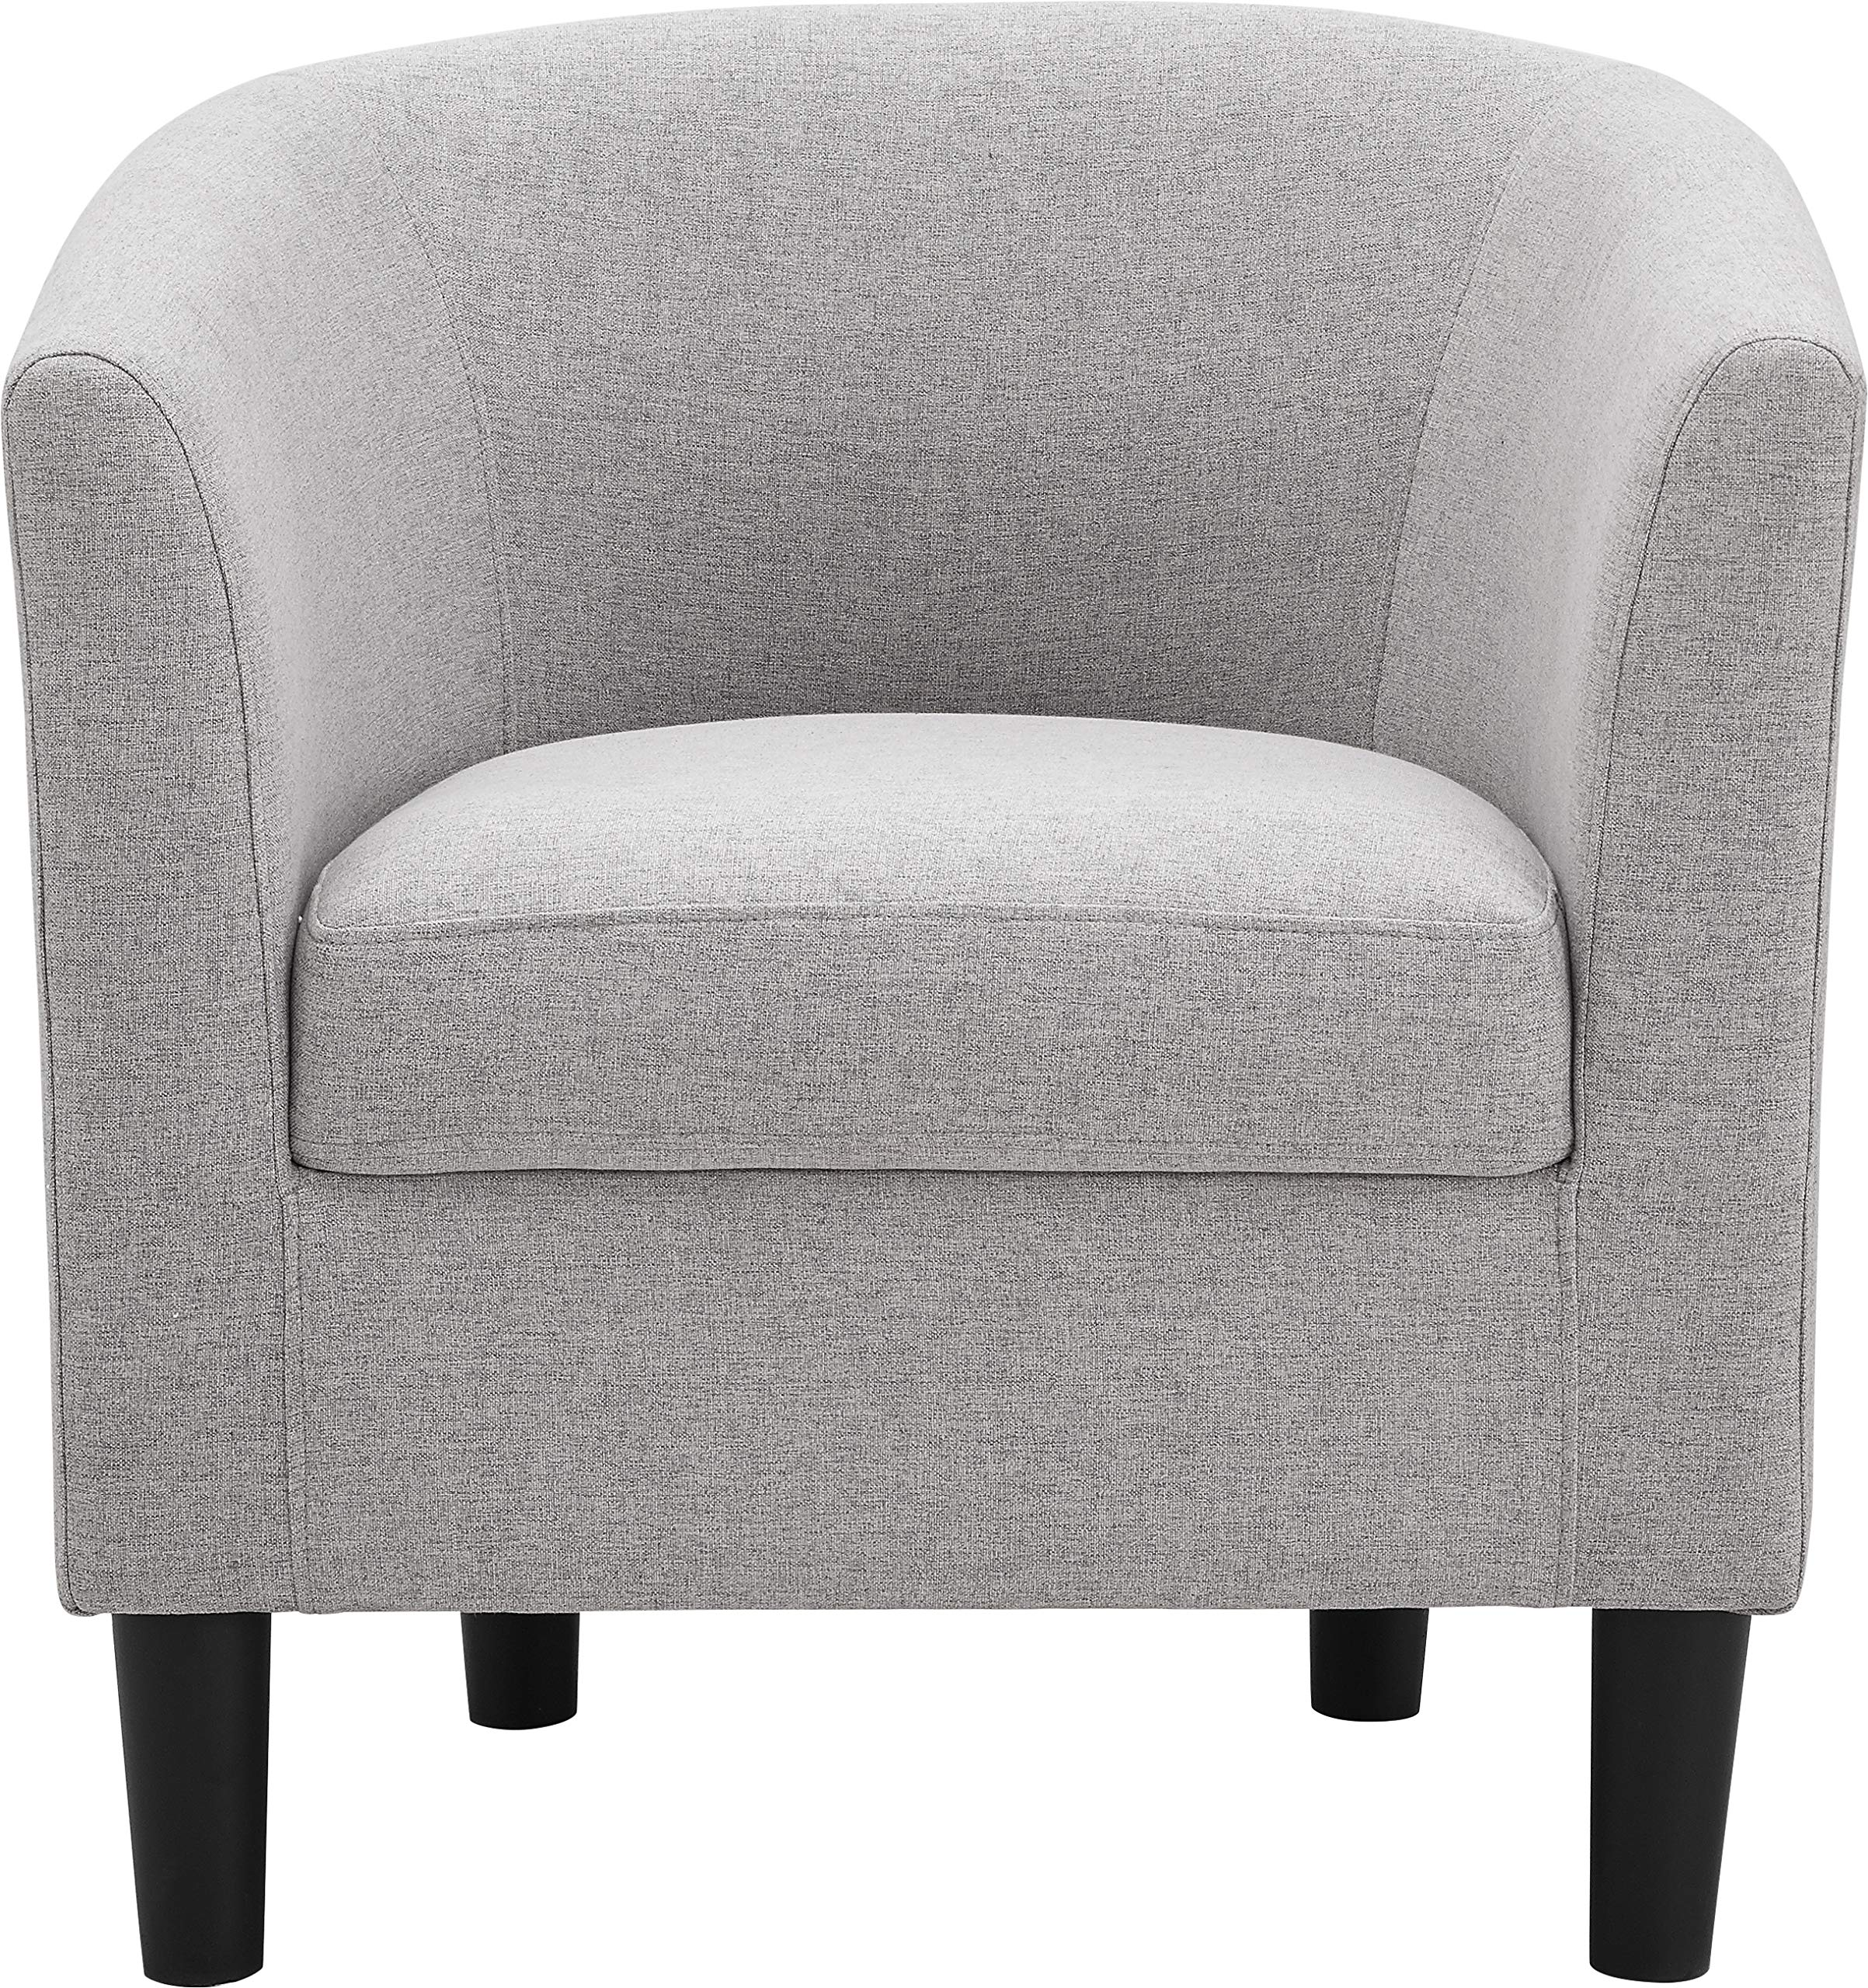 Dazone Modern Accent Chair Upholstered Comfy Arm Chair Linen Fabric Single Sofa Chair with Ottoman Foot Rest Grey - ☃【Ergonomically Designed】A sofa furniture chairs with solid wood legs, this Upholstered Armchair promotes comfort and assists with maintaining a healthy posture for your single upholstered chairs. ☃【Upholstered Seat & Easy to Clean】This Modern Comfy chair for living room is with a soft Linen-Like fabric upholstery and removable cushion for hassle-free.Easy to clean. ☃【Armchair with Ottoman】This living room chair comes completely with a matching ottoman and it is perfect for kicking your feet up to relax after a long day and is great for reading, working on your laptop, watching TV, or napping - living-room-furniture, living-room, accent-chairs - A1 BcOF0SHL -